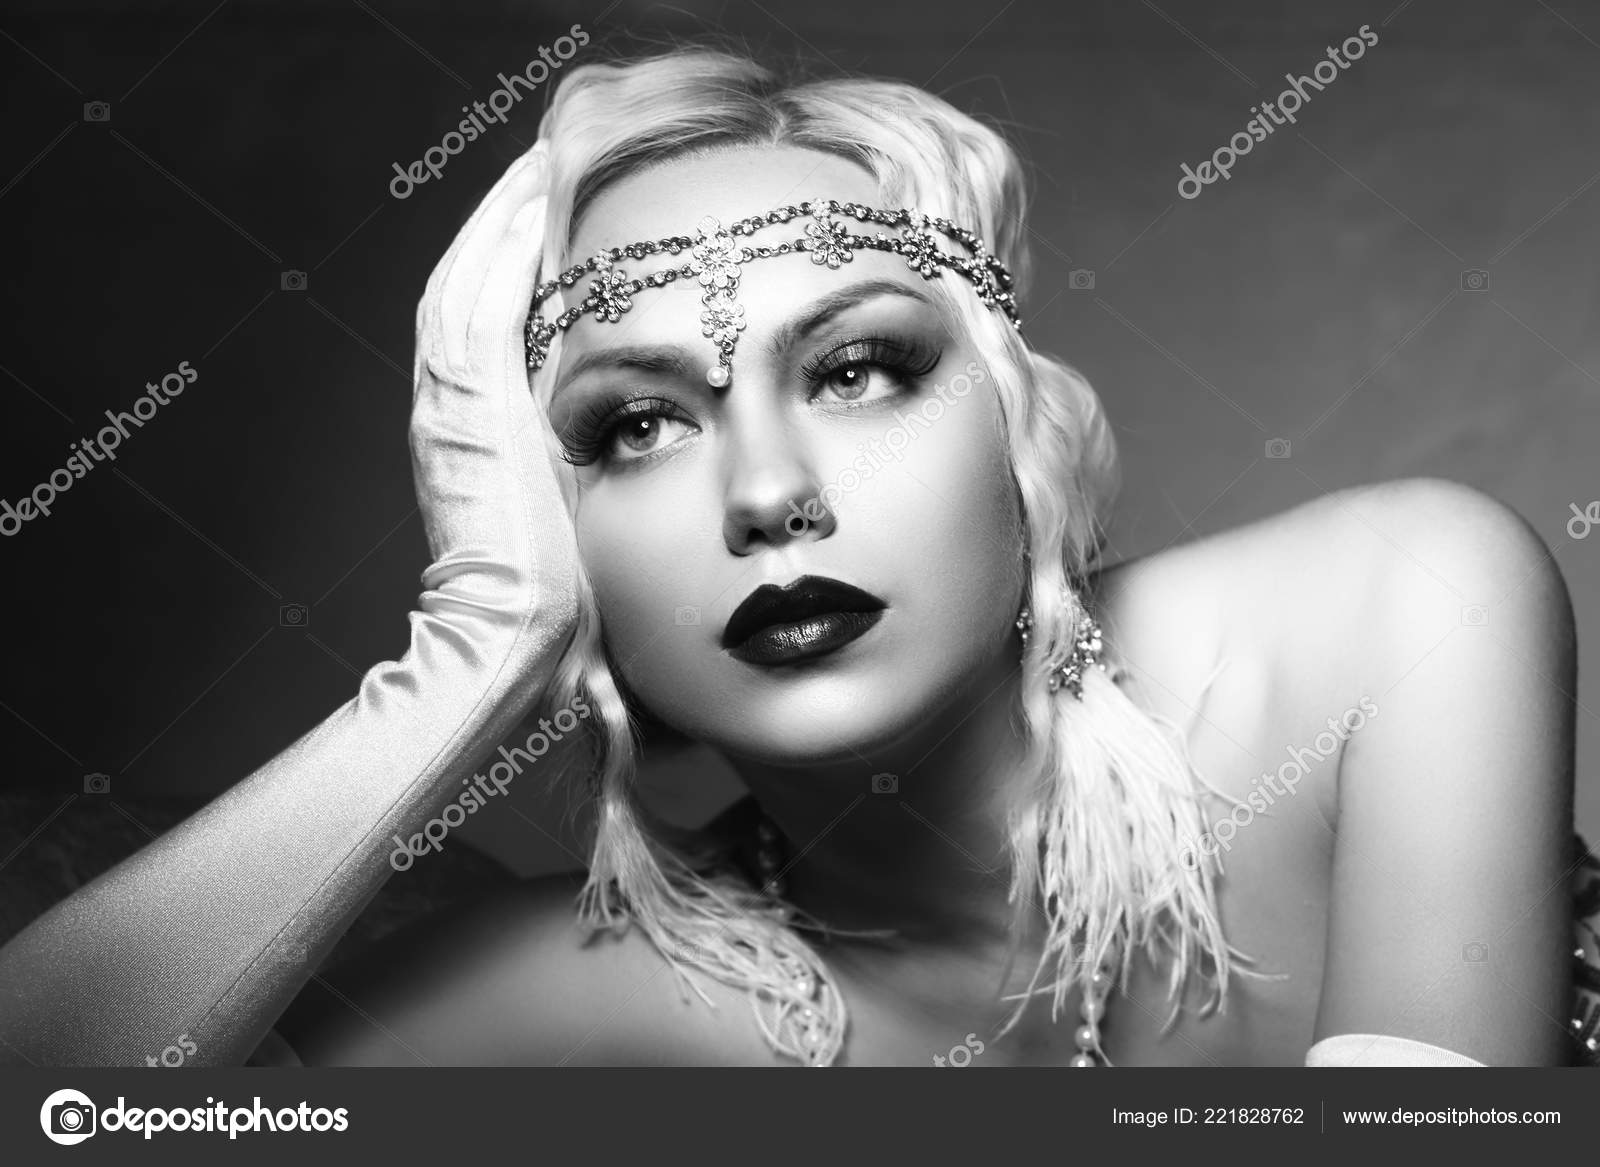 Beautiful Woman Retro Flapper Style Woman Black White Foto Roaring